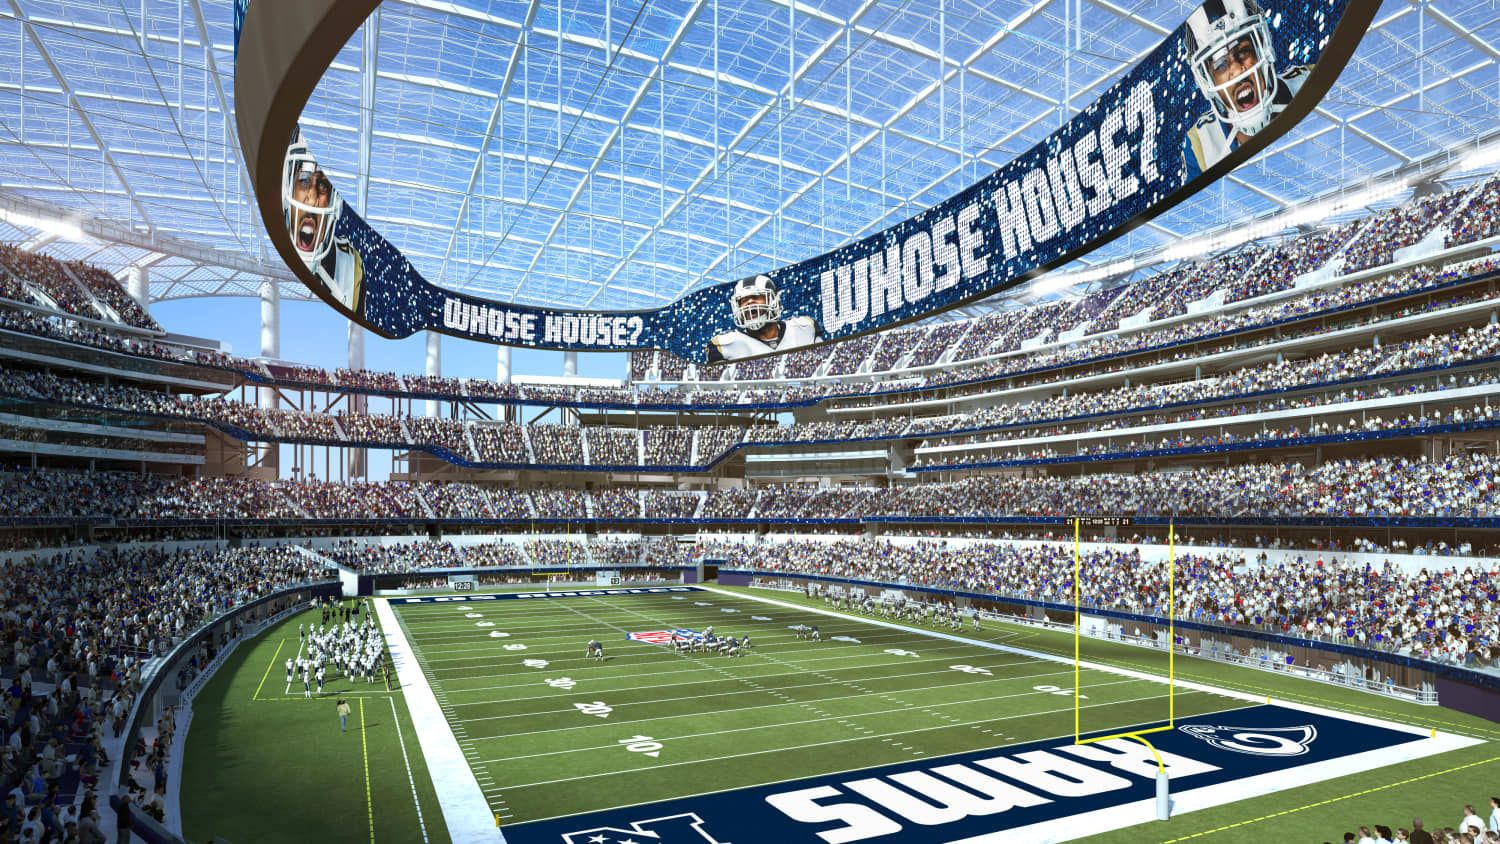 Los Angeles Rams Future New Stadium 2020 Construction In